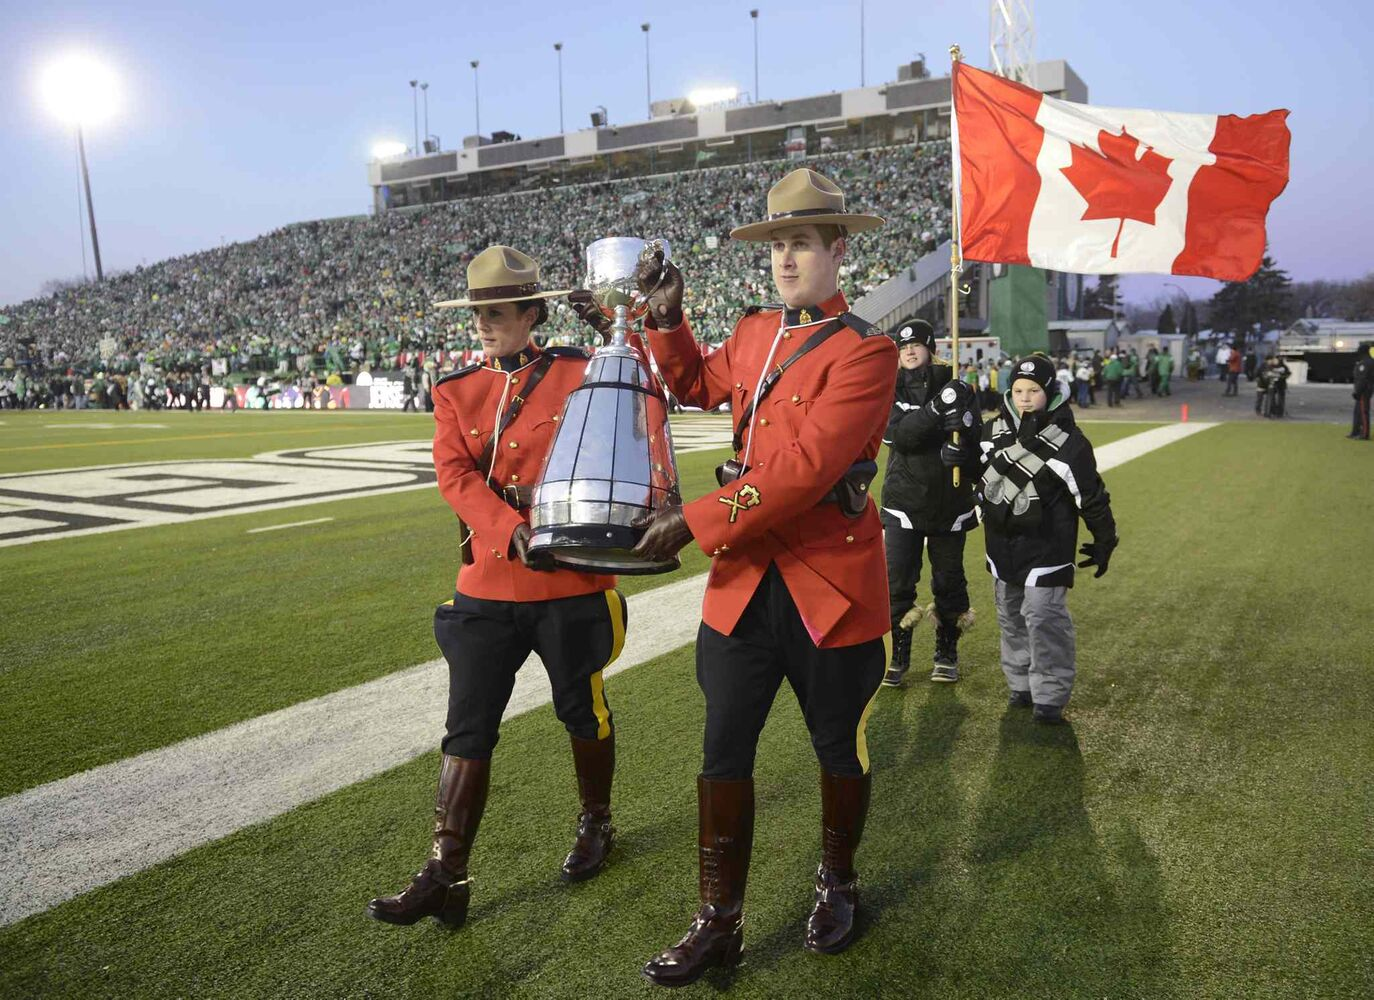 The Grey Cup is carried onto the field during pre-game ceremonies. (Ryan Remiorz / The Canadian Press)